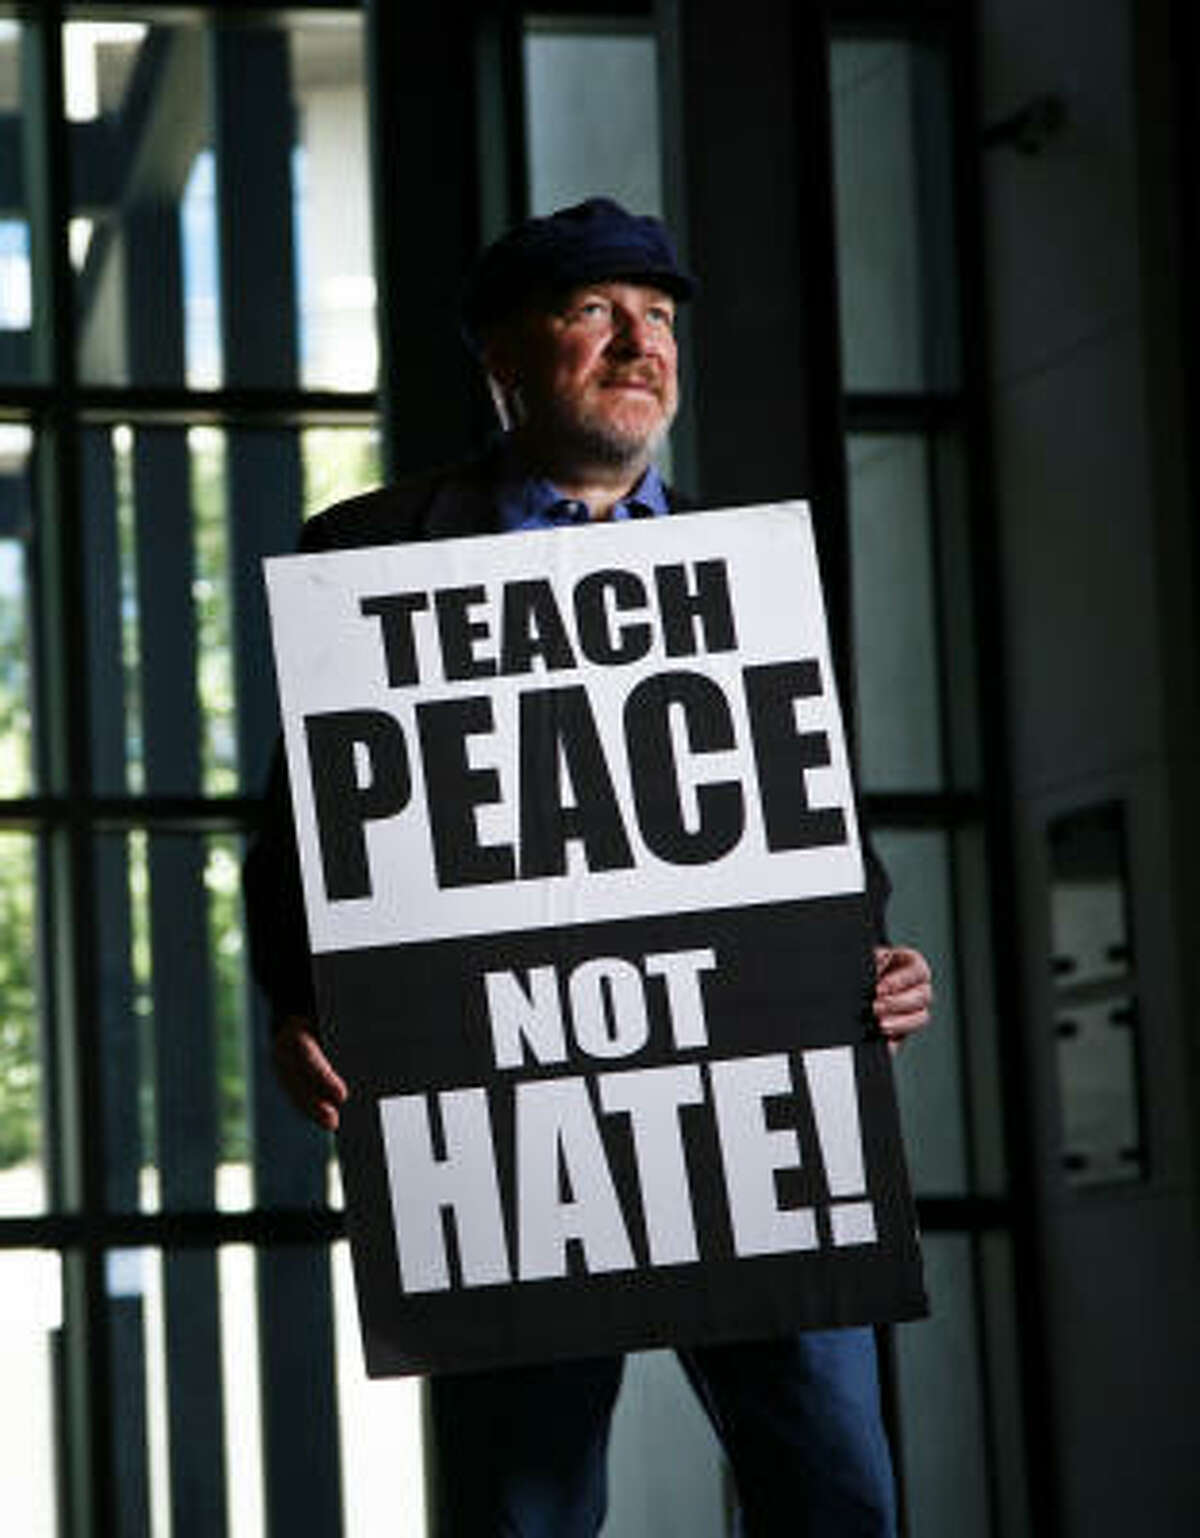 Ira Bleiweiss is trying to teach others about tolerance by taking out billboards around town urging the message of peace. Bleiweiss also helps spread his message by volunteering as a docent at the Holocaust Museum.